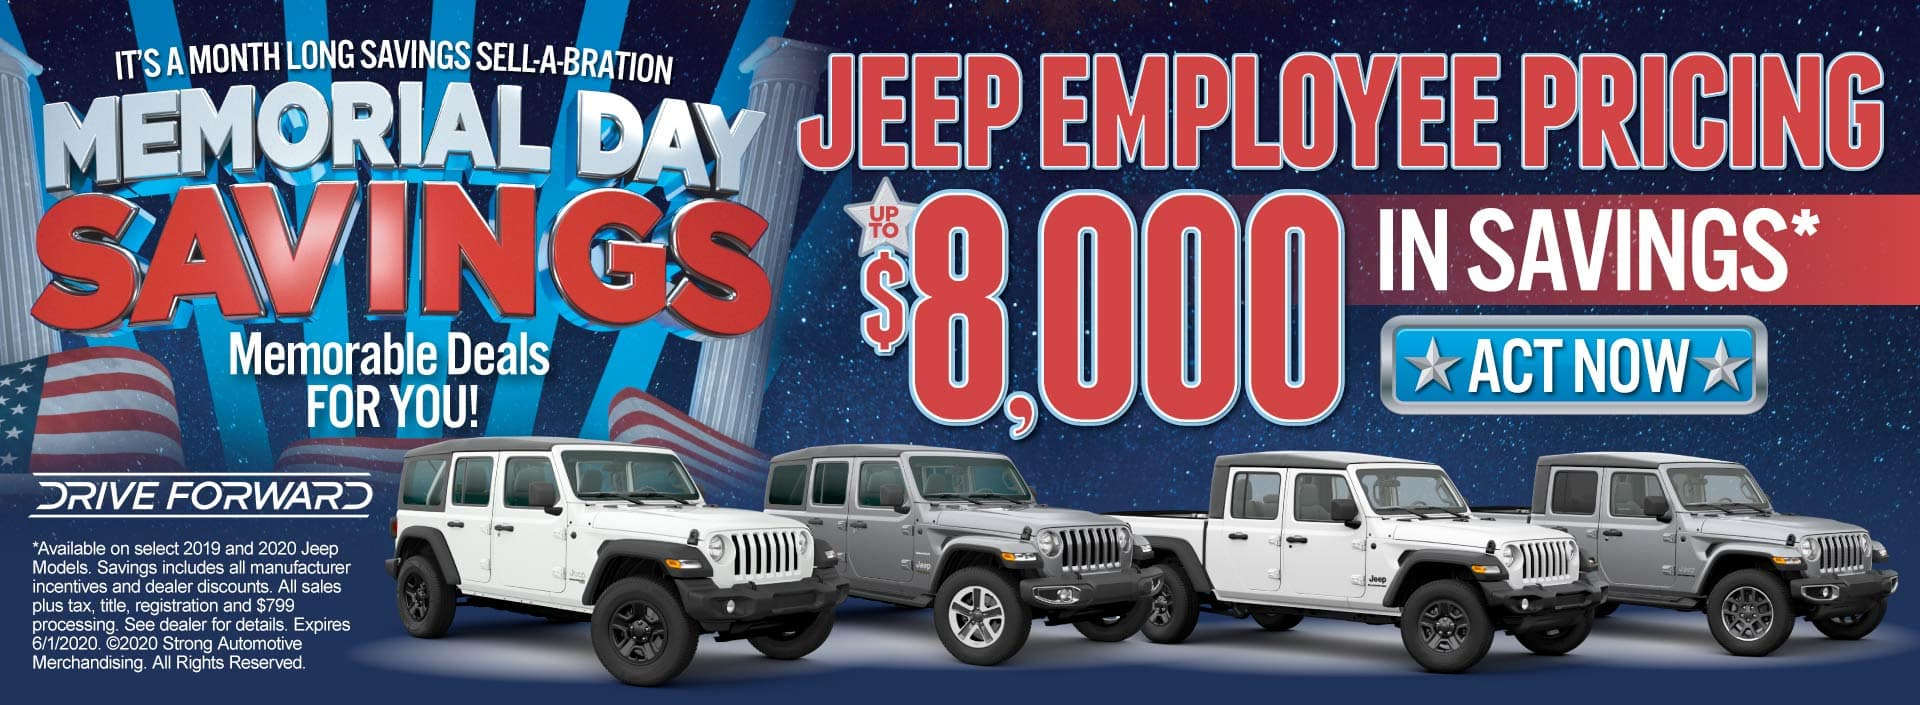 Jeep Employee Pricing - Up to $8,000 in savings - Click to View Inventory